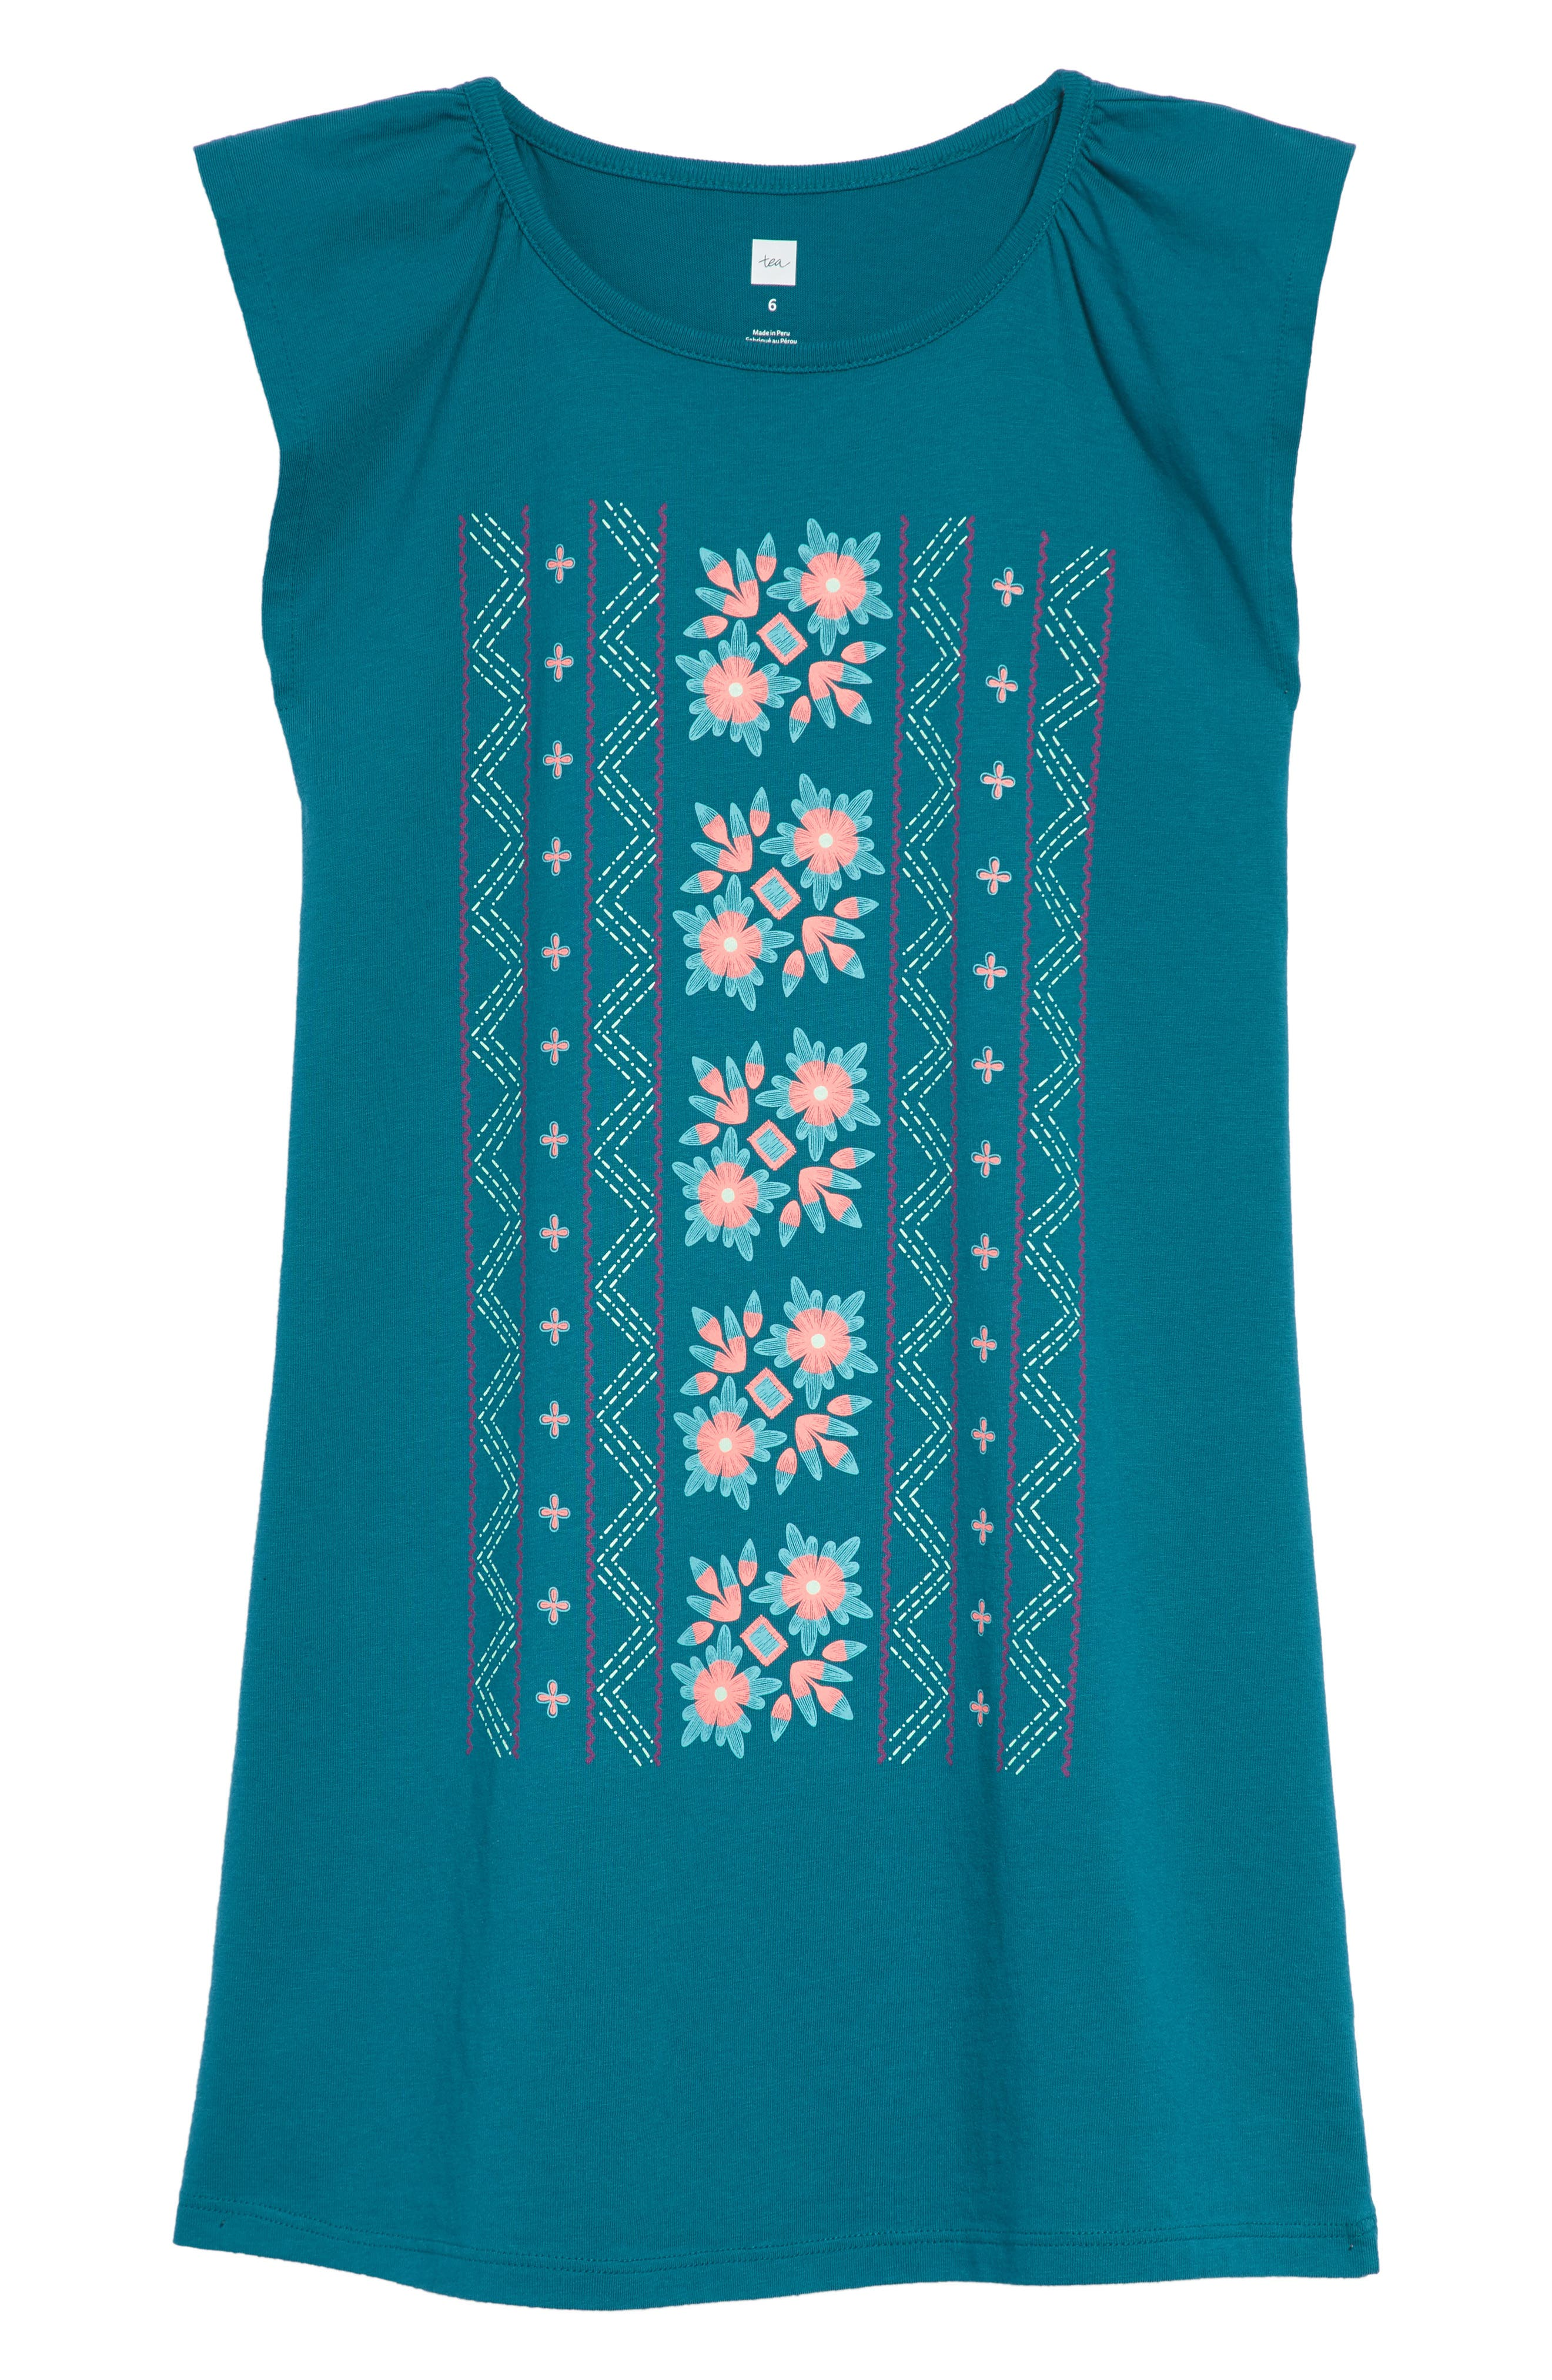 Girls\' Clothing and Accessories | Nordstrom